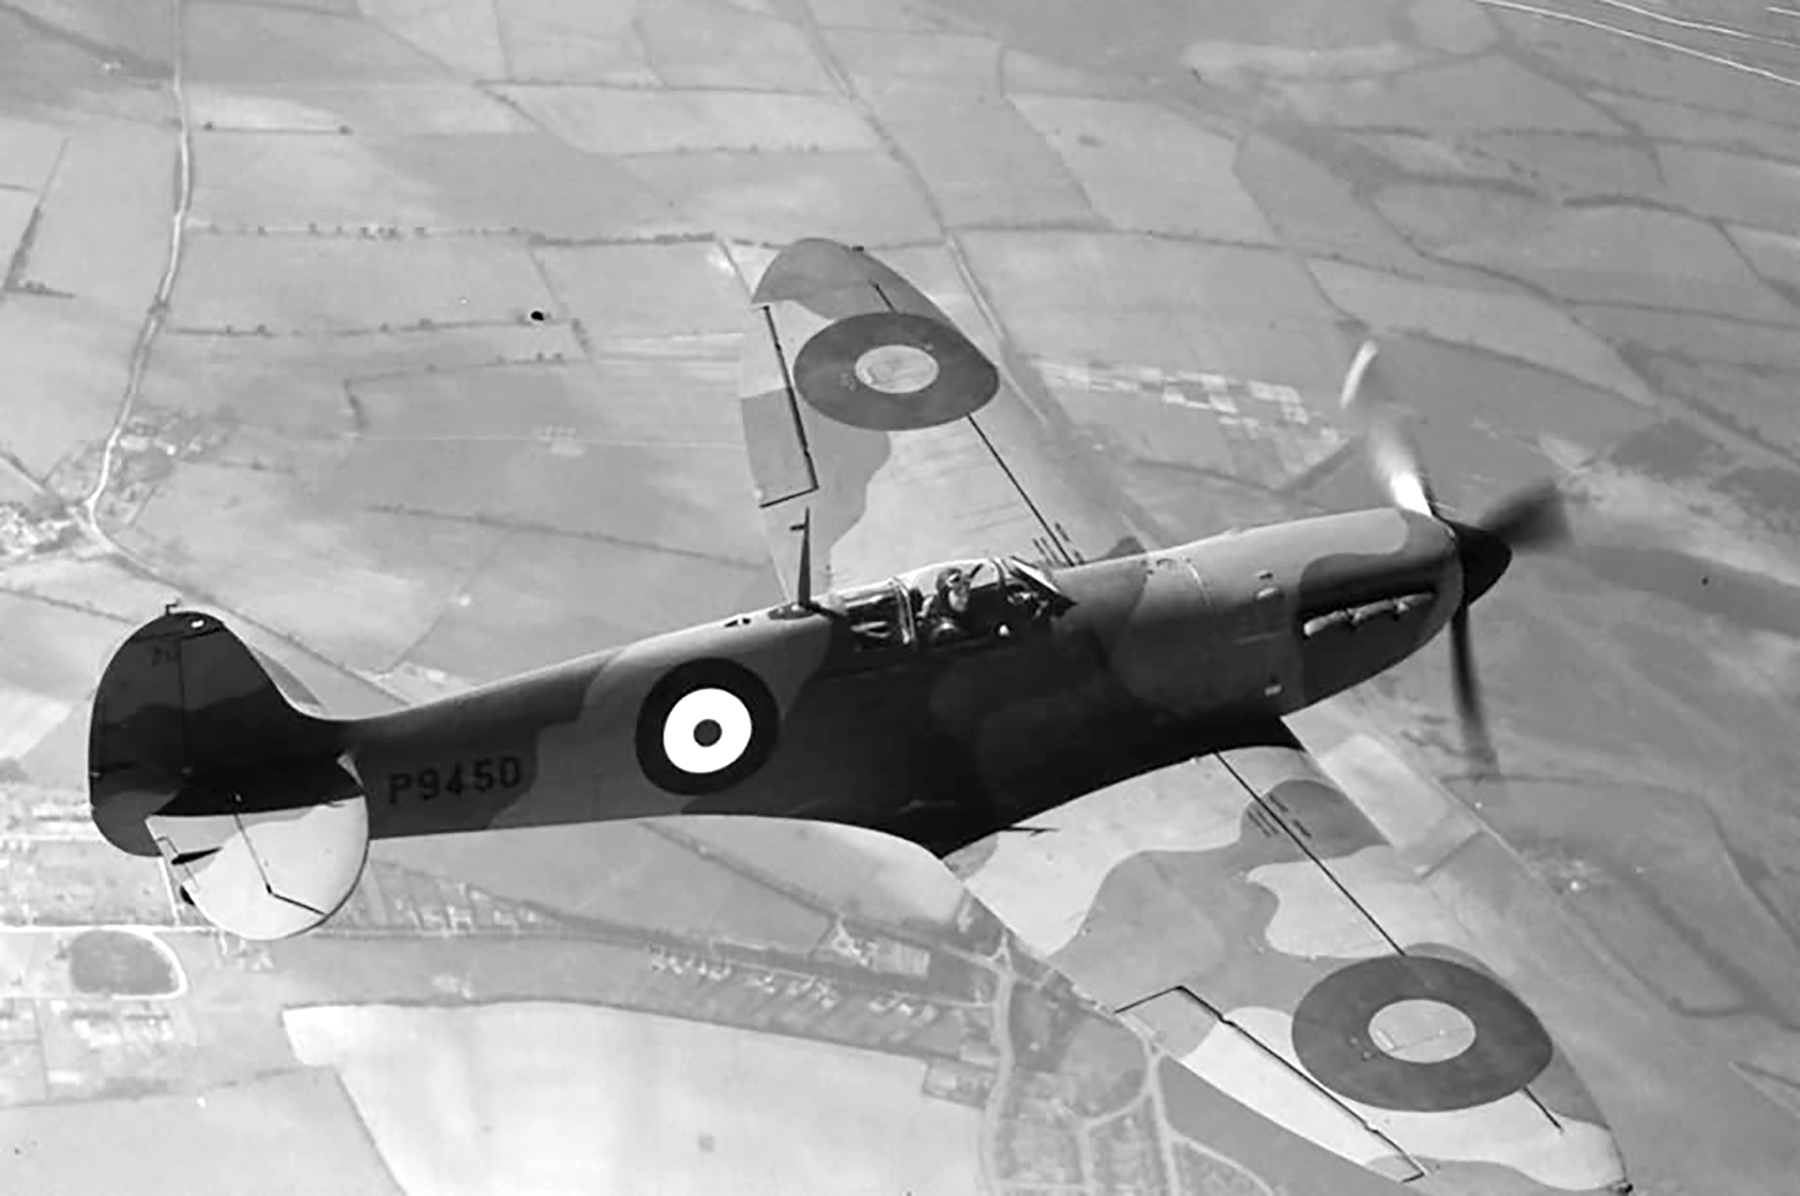 Factory fresh Spitfire MkIa P9450 showing upper wing camouflage in flight April 1940 web 01